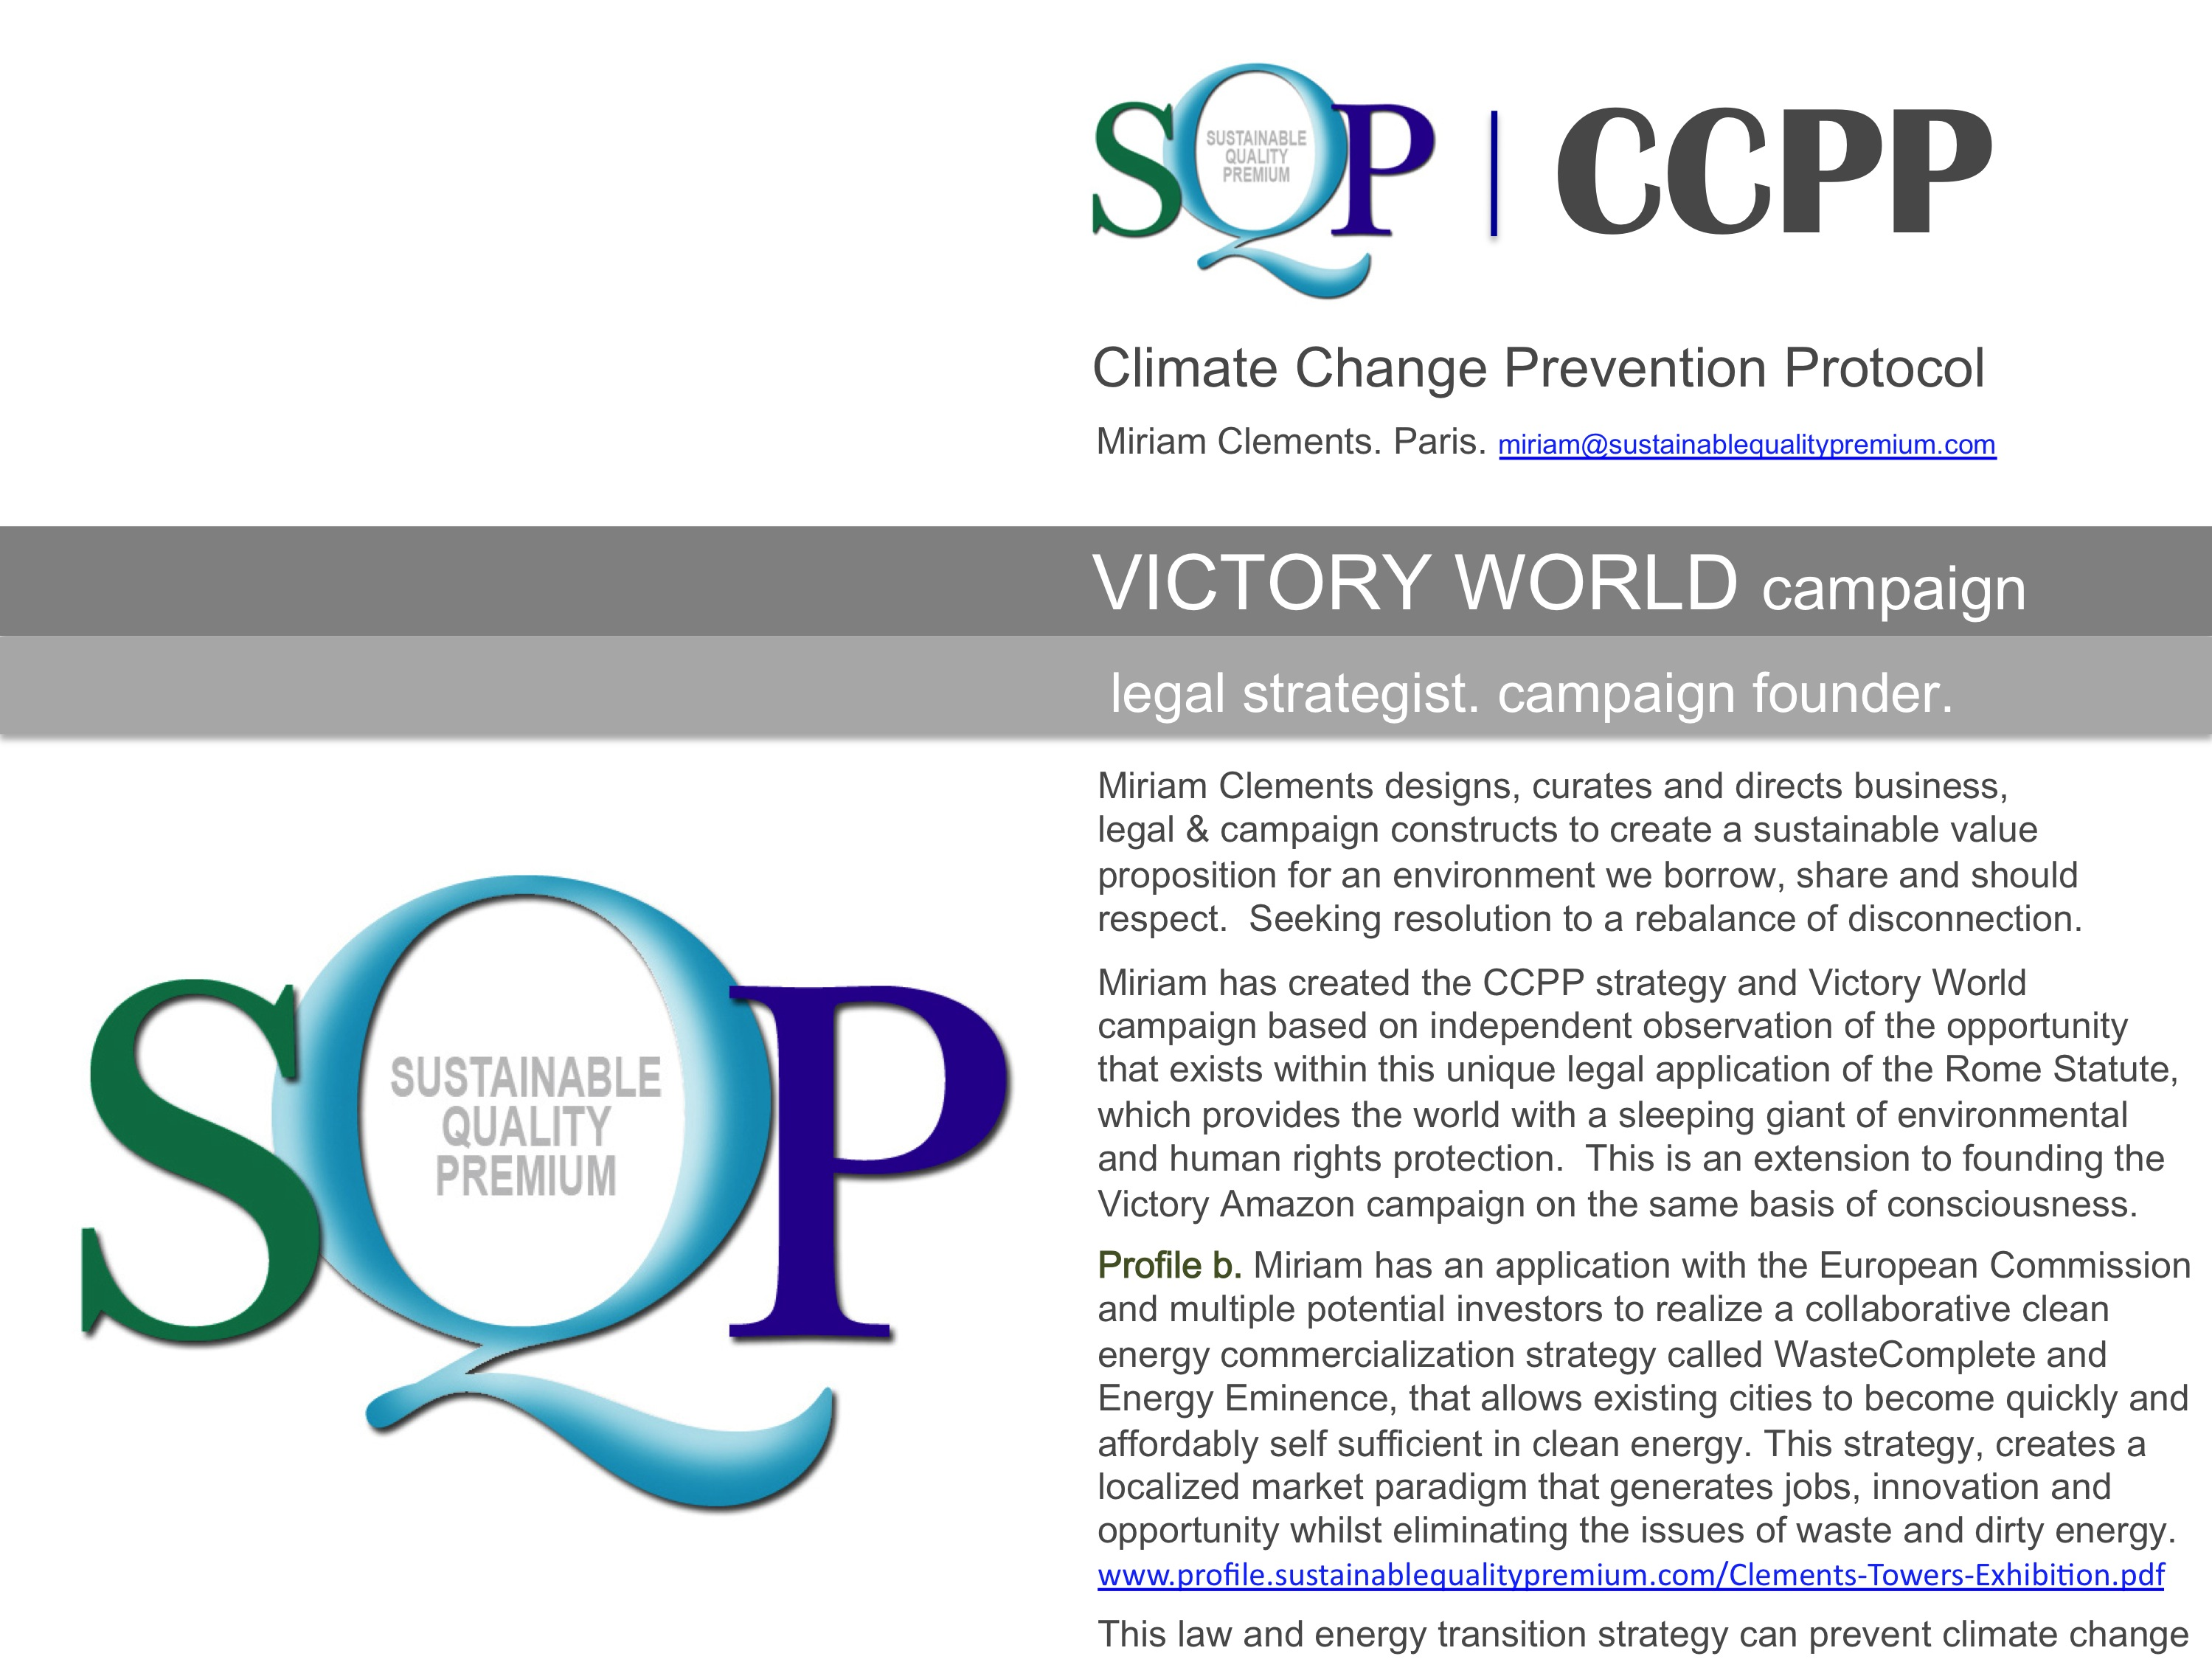 SQP CCPP. campaign founder.